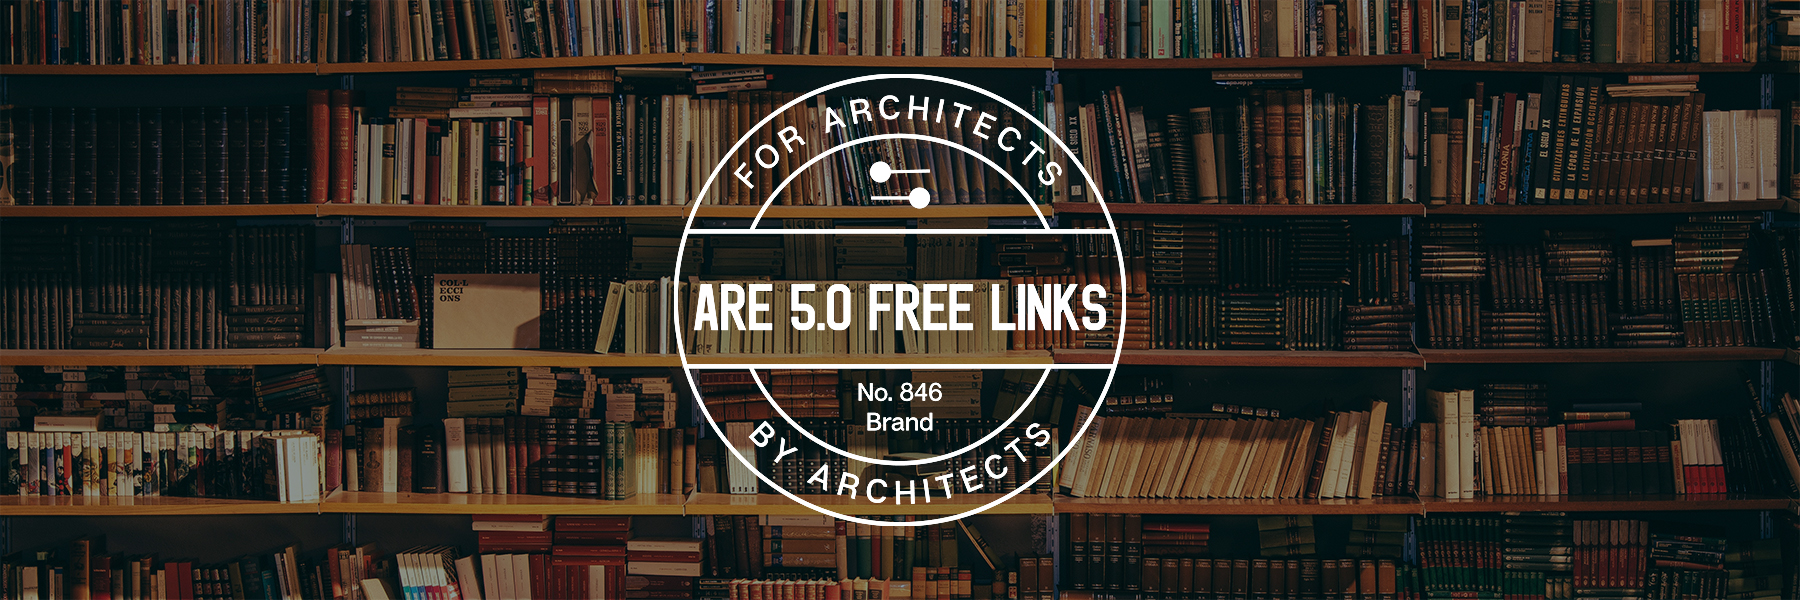 ARE 5 0 Free Online Resource Links - Hyperfine Architecture